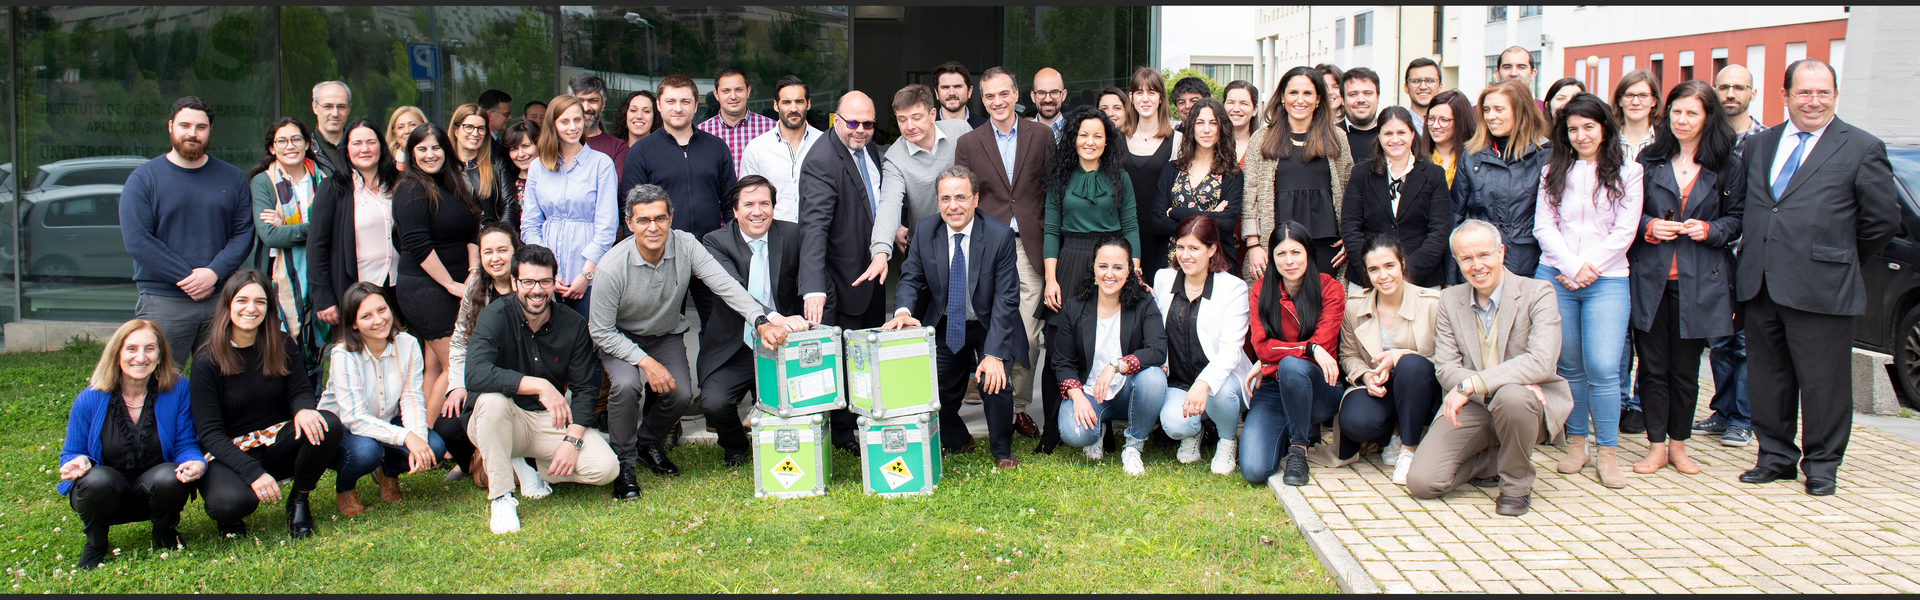 Team during the 10th anniversary of ICNAS